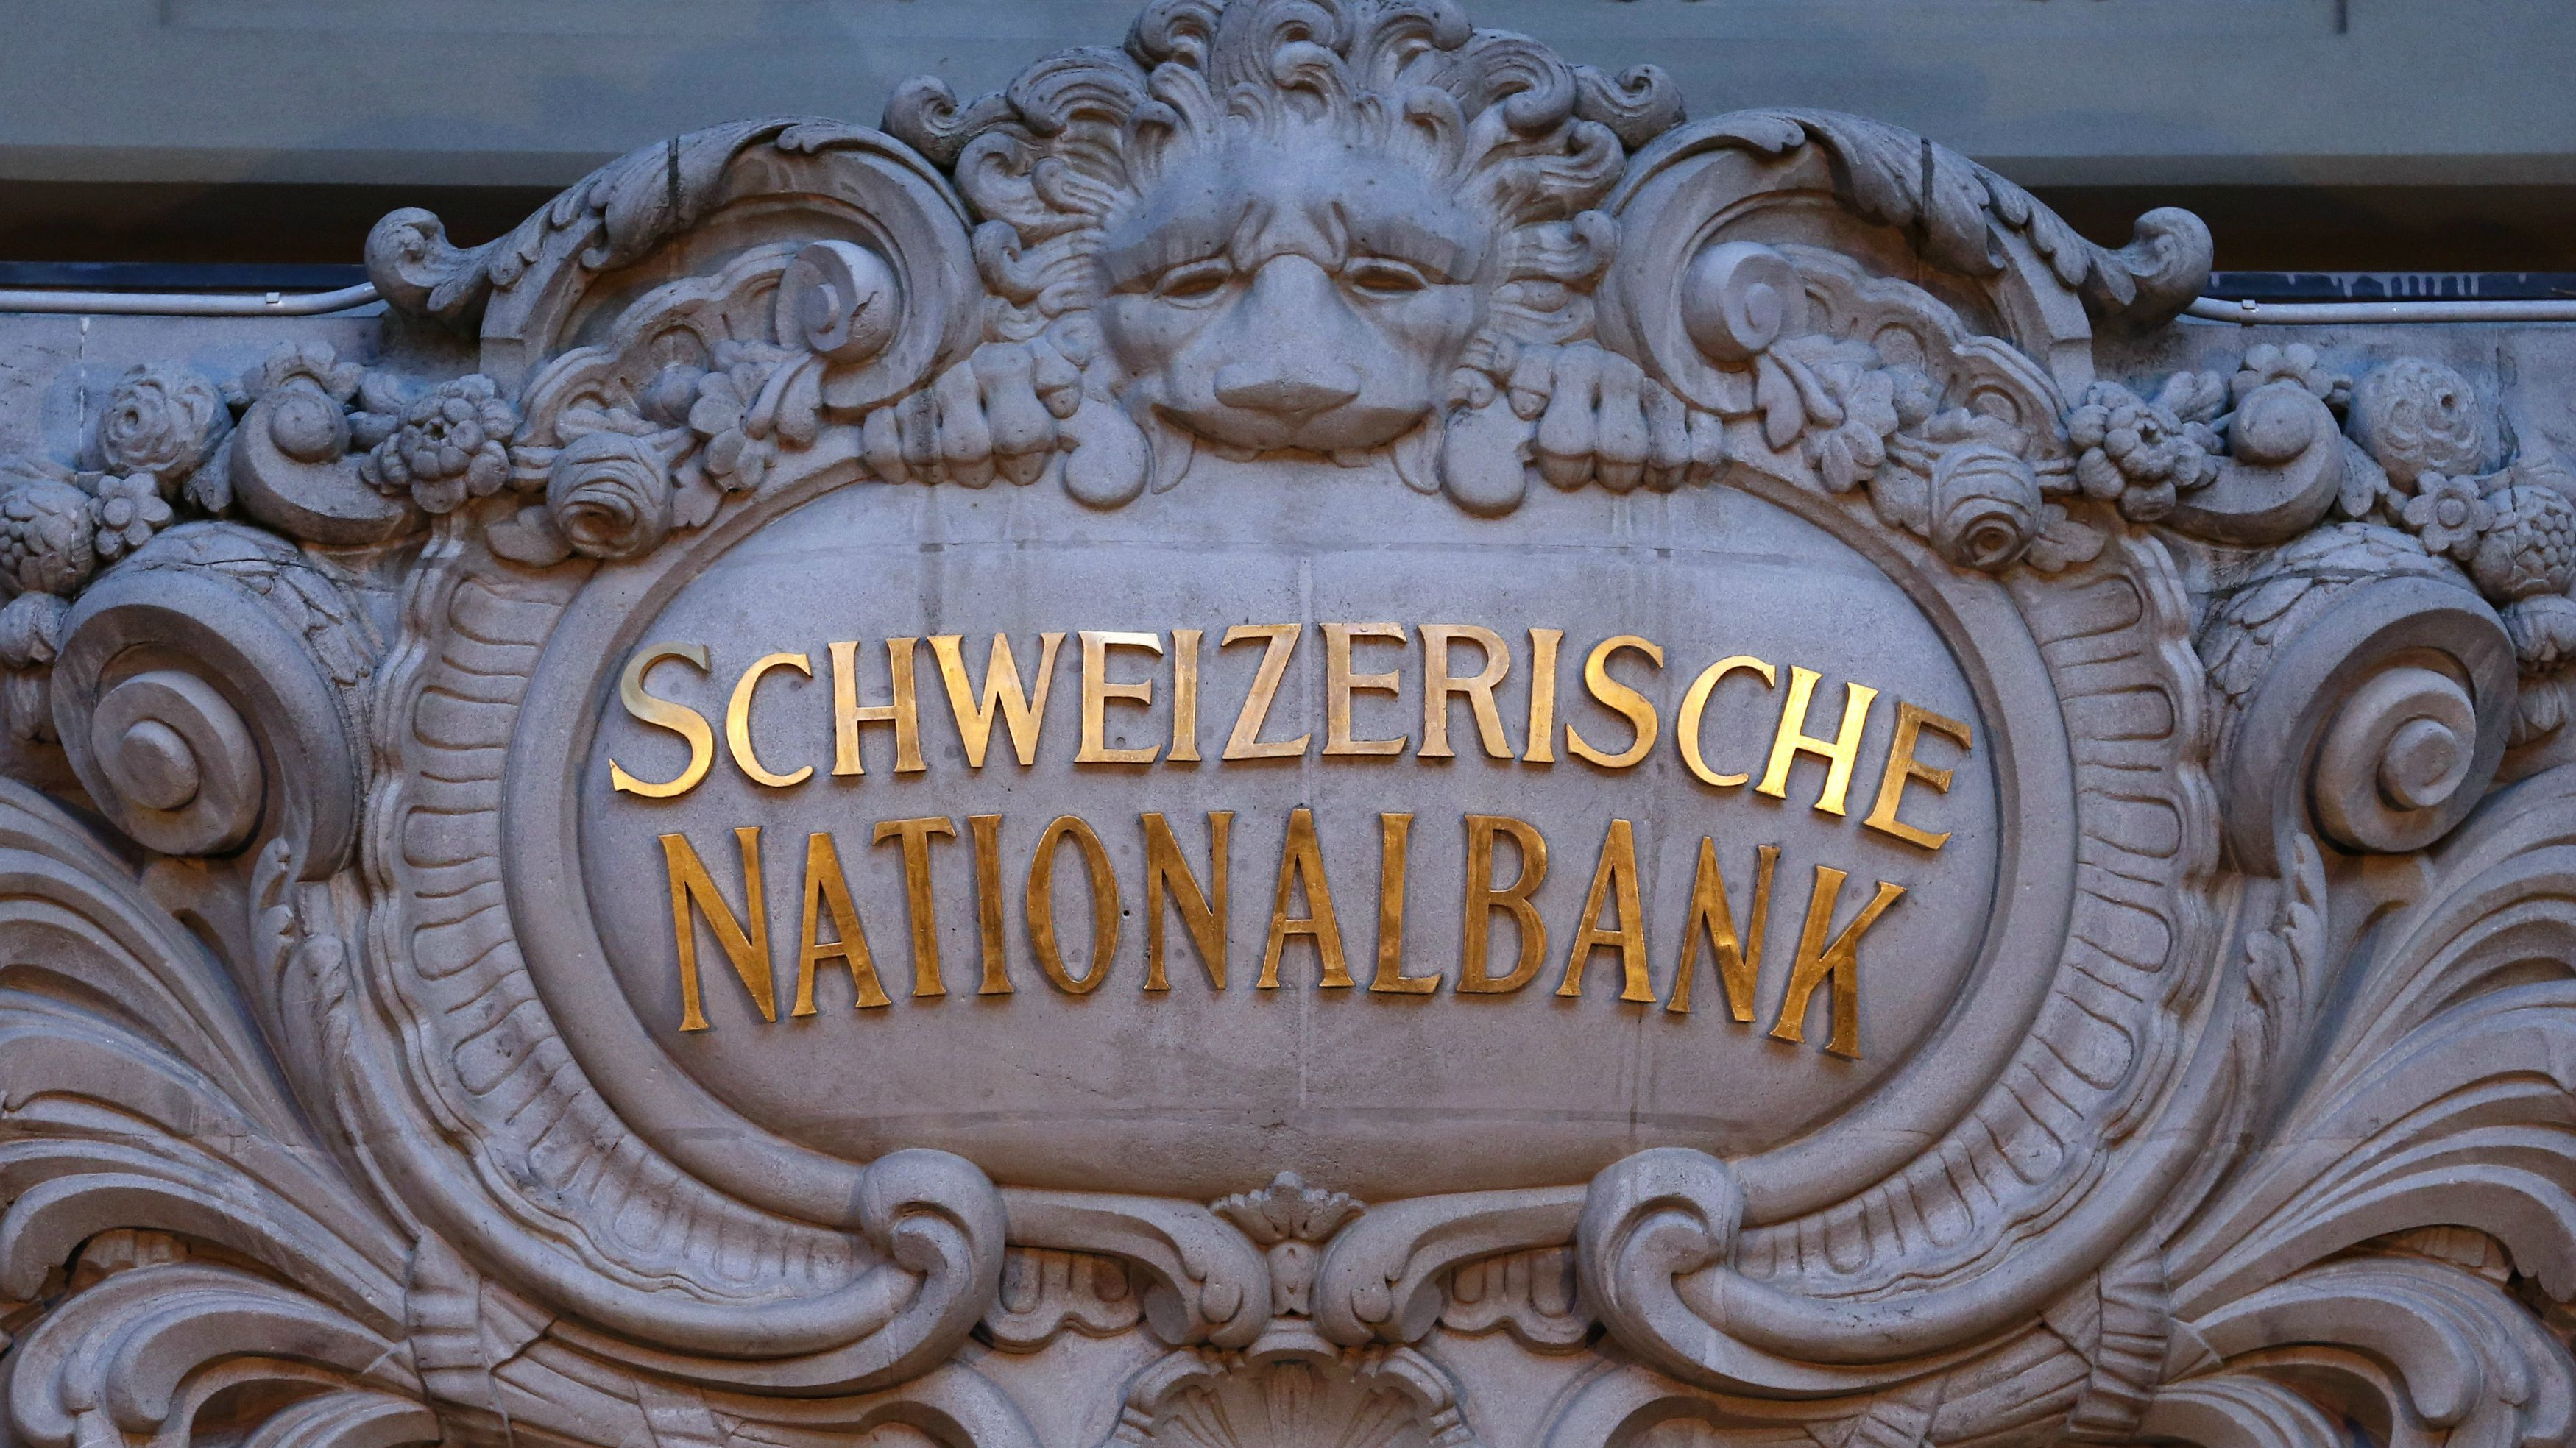 The logo of the Swiss National Bank (SNB) is seen at the entrance of the SNB in Bern January 15, 2015. The SNB shocked financial markets on Thursday by scrapping a three-year-old cap on the franc, sending the safe-haven currency soaring against the euro and stocks plunging amid fears for the export-reliant Swiss economy. REUTERS/Thomas Hodel (SWITZERLAND - Tags: BUSINESS POLITICS LOGO)